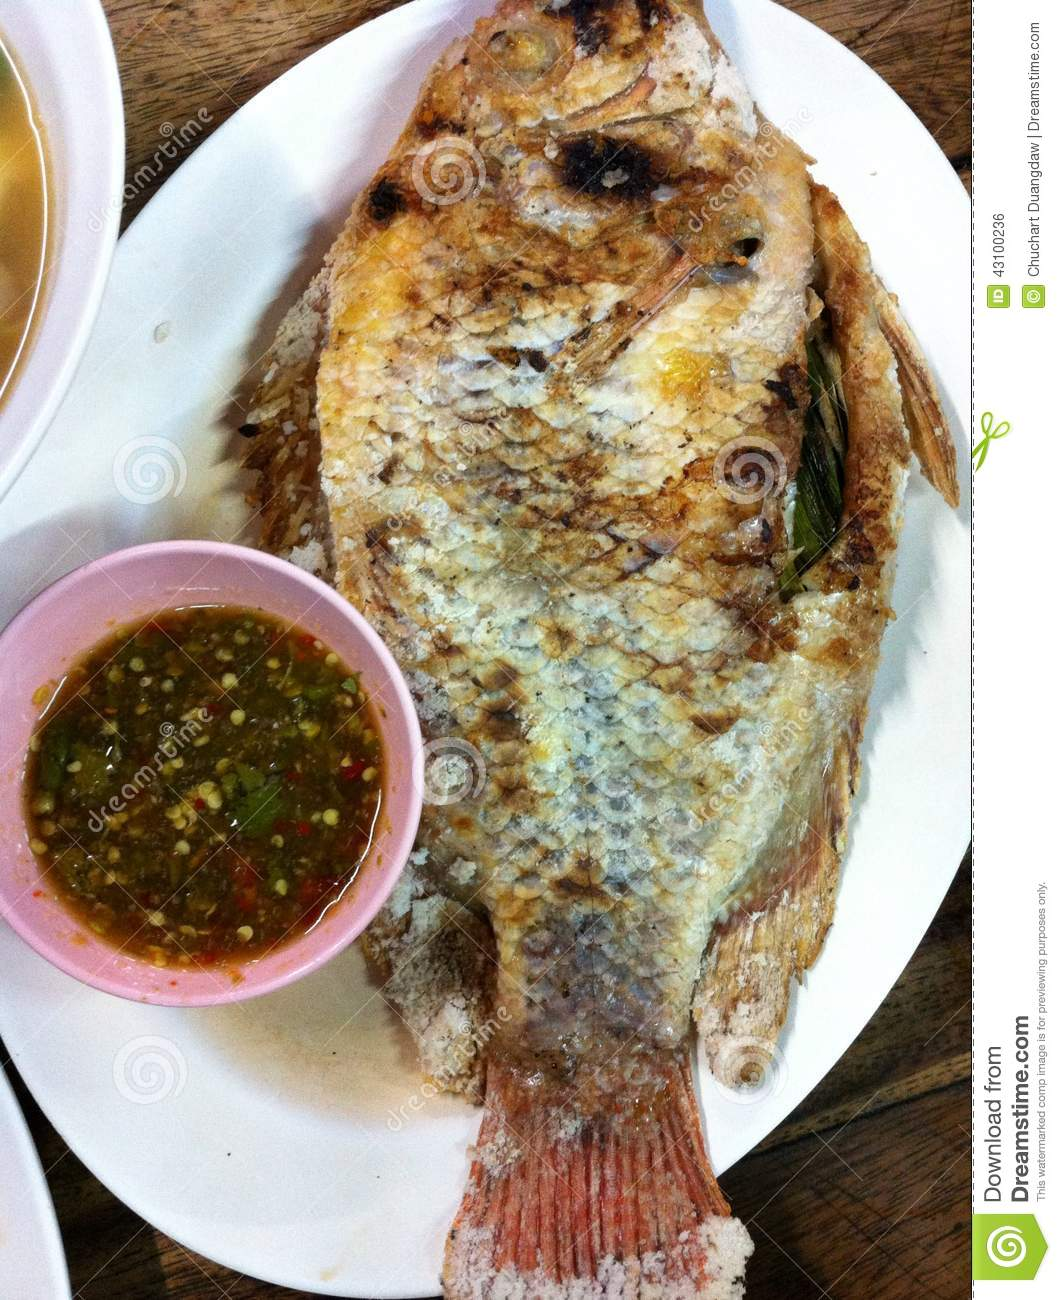 Fihs Grill Food Thai Delicious Stock Photo - Image: 43100236